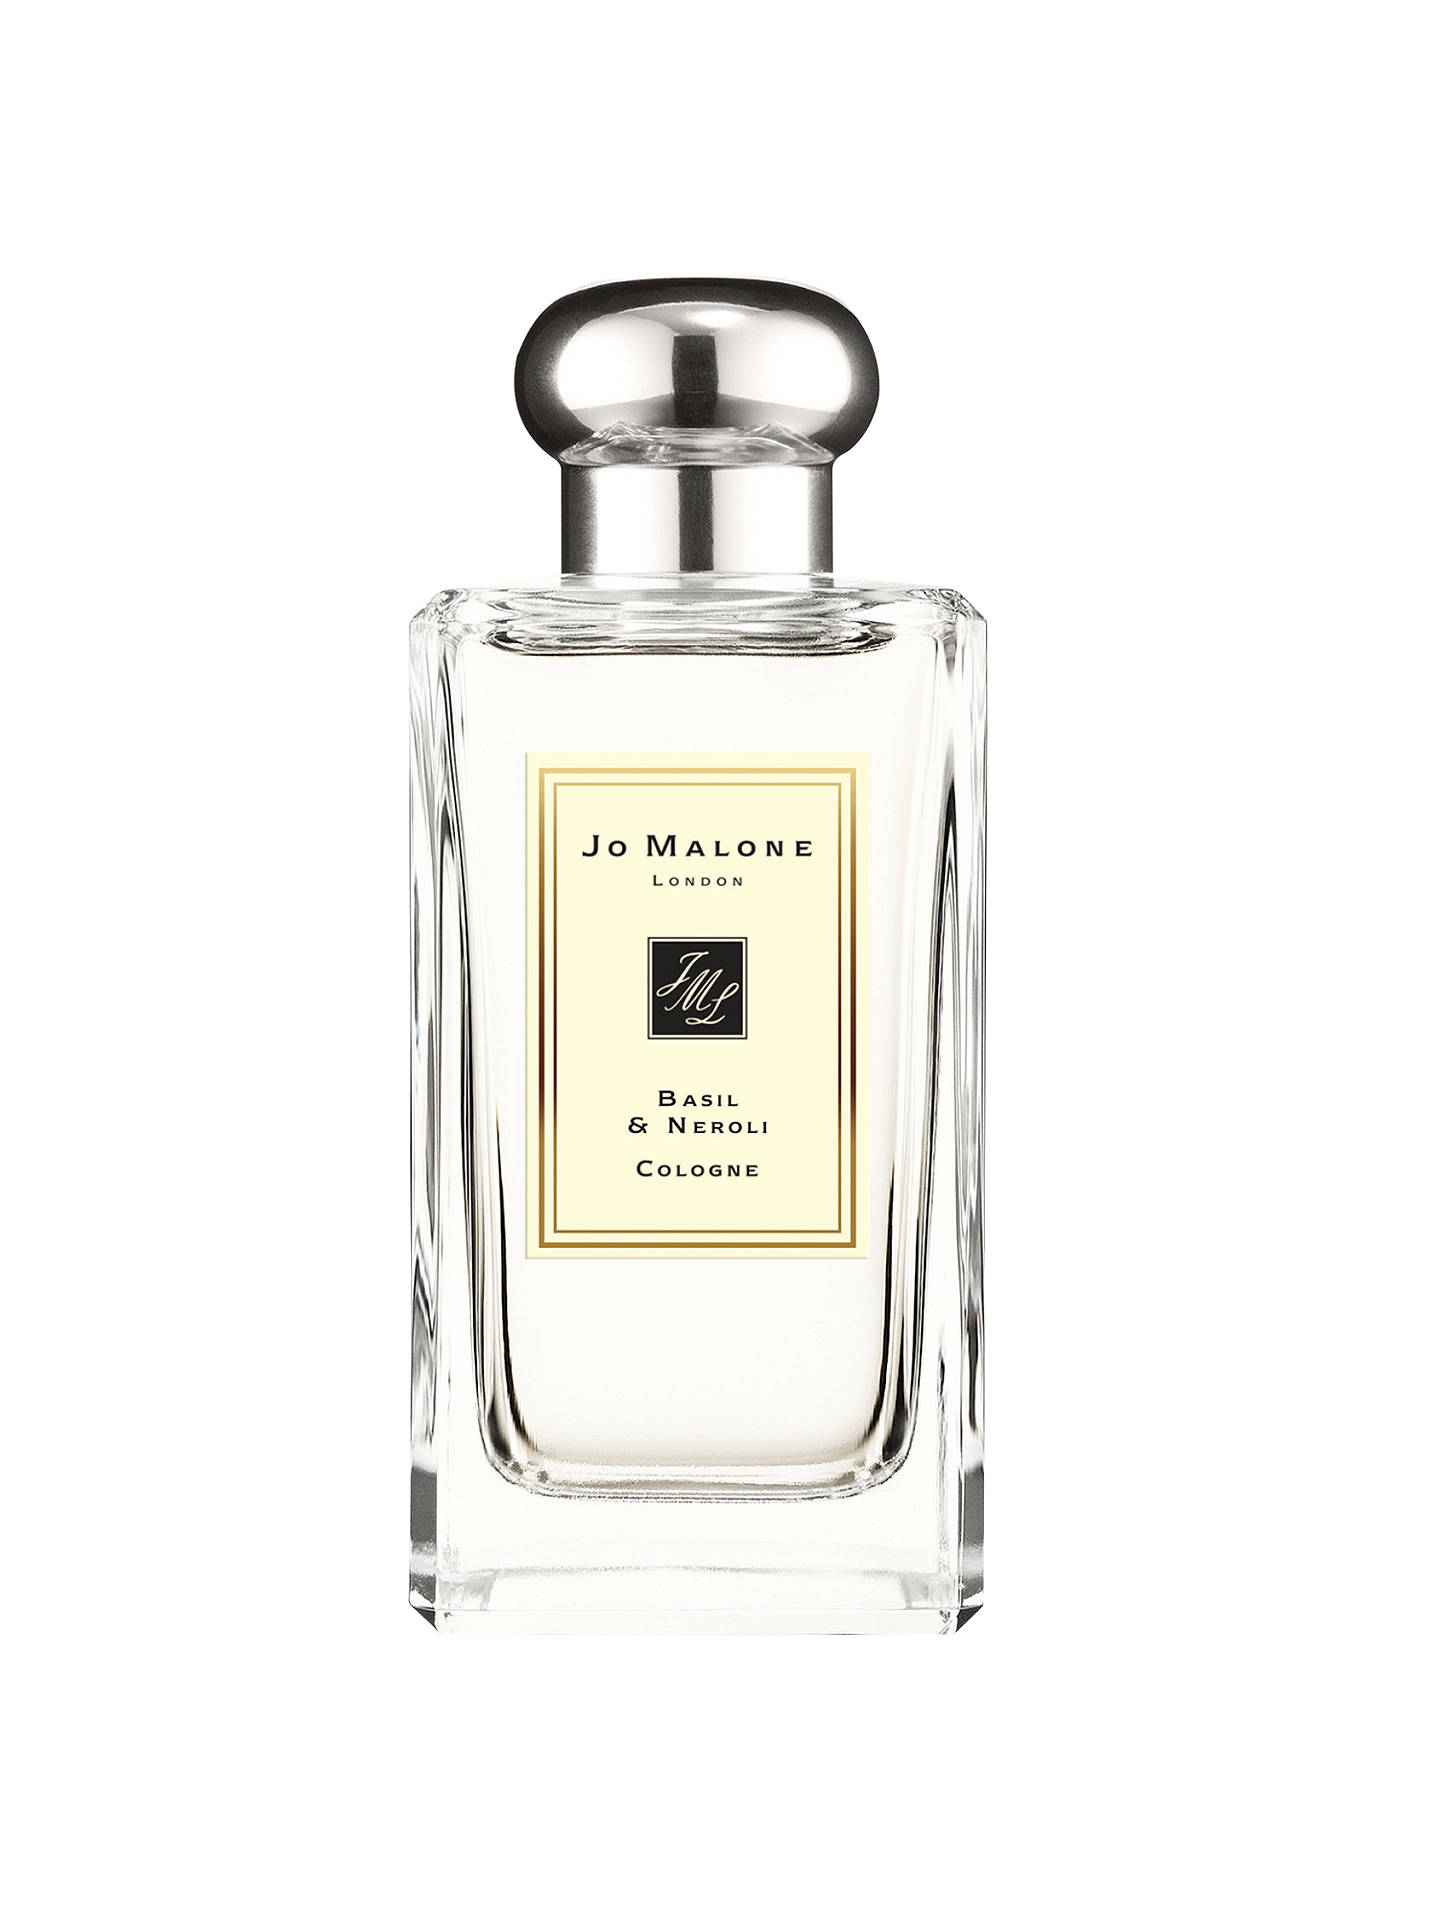 BuyJo Malone London Basil & Neroli Cologne, 100ml Online at johnlewis.com